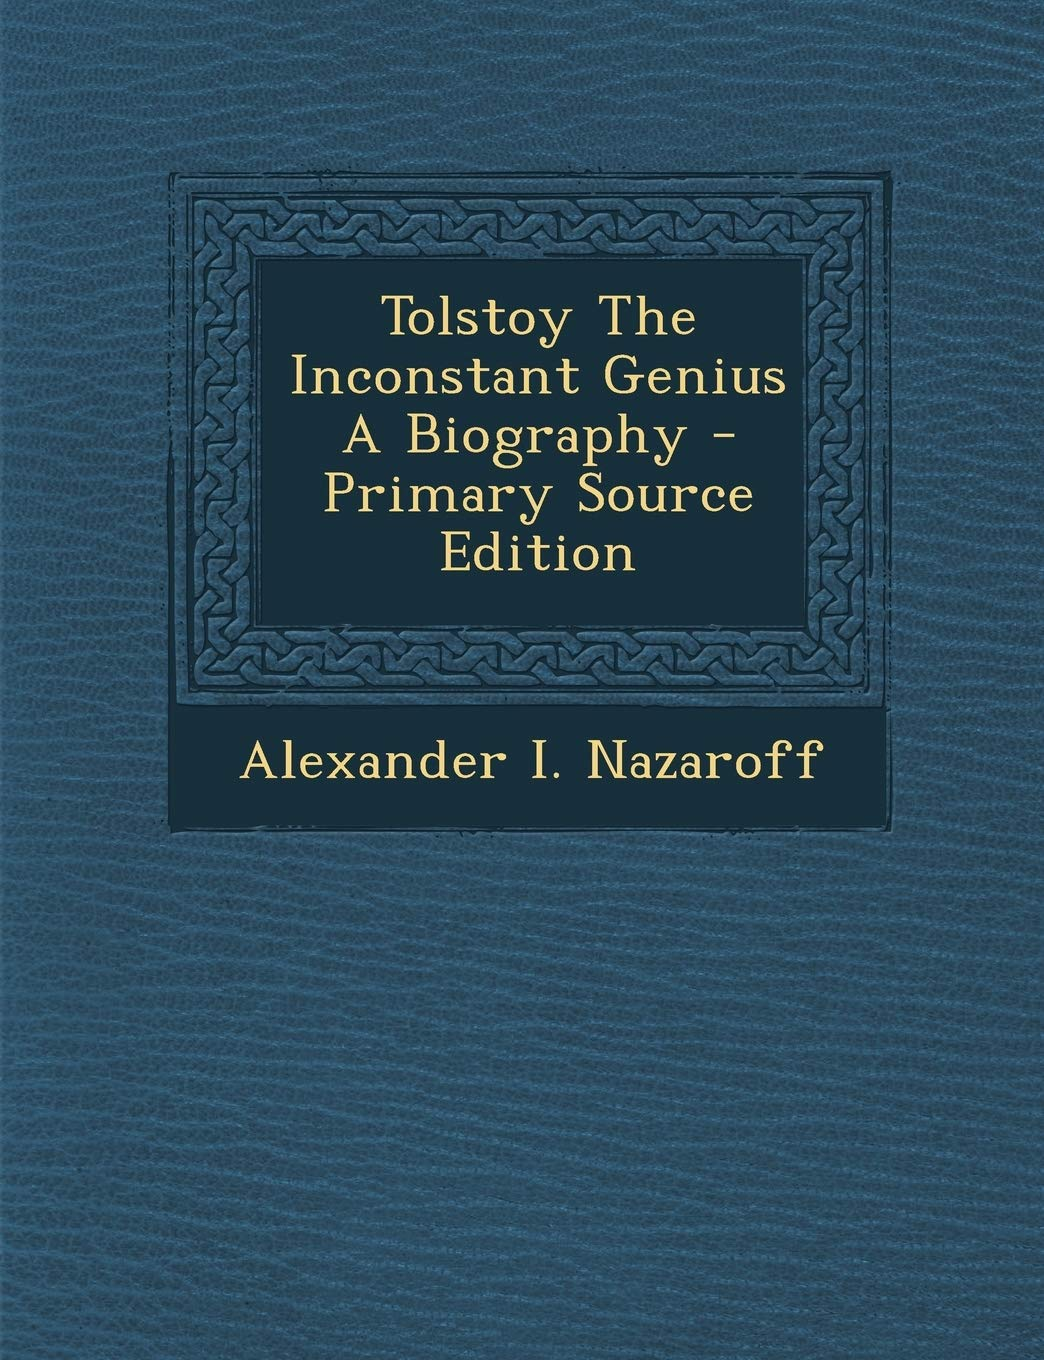 Tolstoy, the inconstant genius - a biography